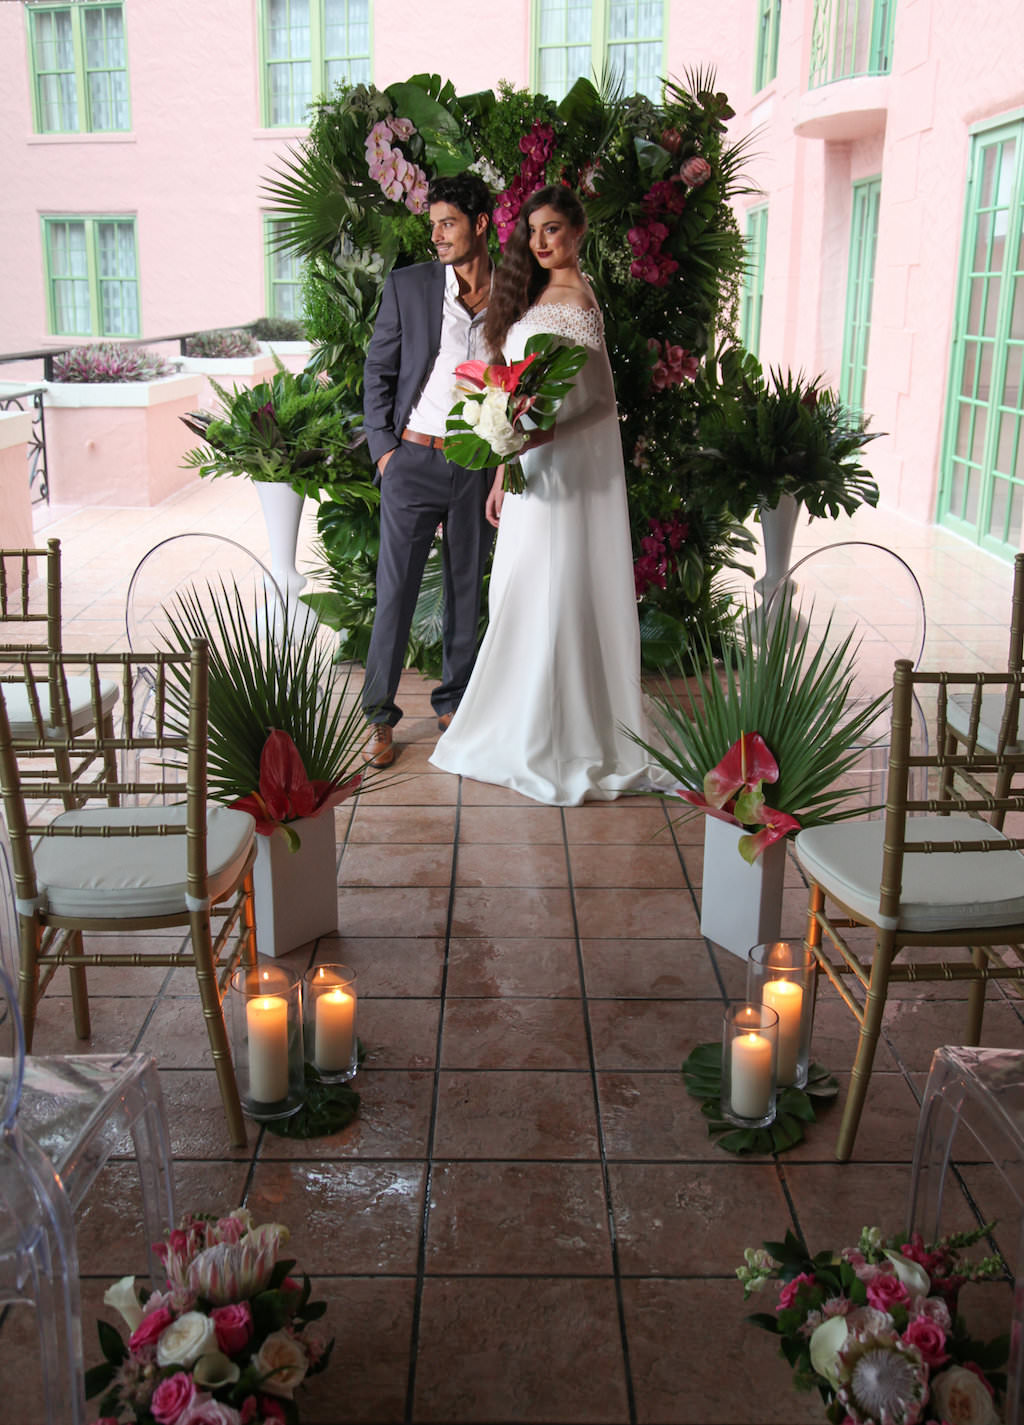 Intimate Hotel Courtyard Tropical Latin Cuban Inspired Wedding Ceremony, with Gold Chiavari Chairs, Tall Pillar Candles in Glass Hurricane Lanterns, Magenta, Pink and White Tropical Florals with Fern and Palm Frond Greenery, With Clear Acrylic Oval Backed Chairs   Tampa Bay Wedding Rentals A Chair Affair   Downtown St Pete Venue Vinoy Renaissance